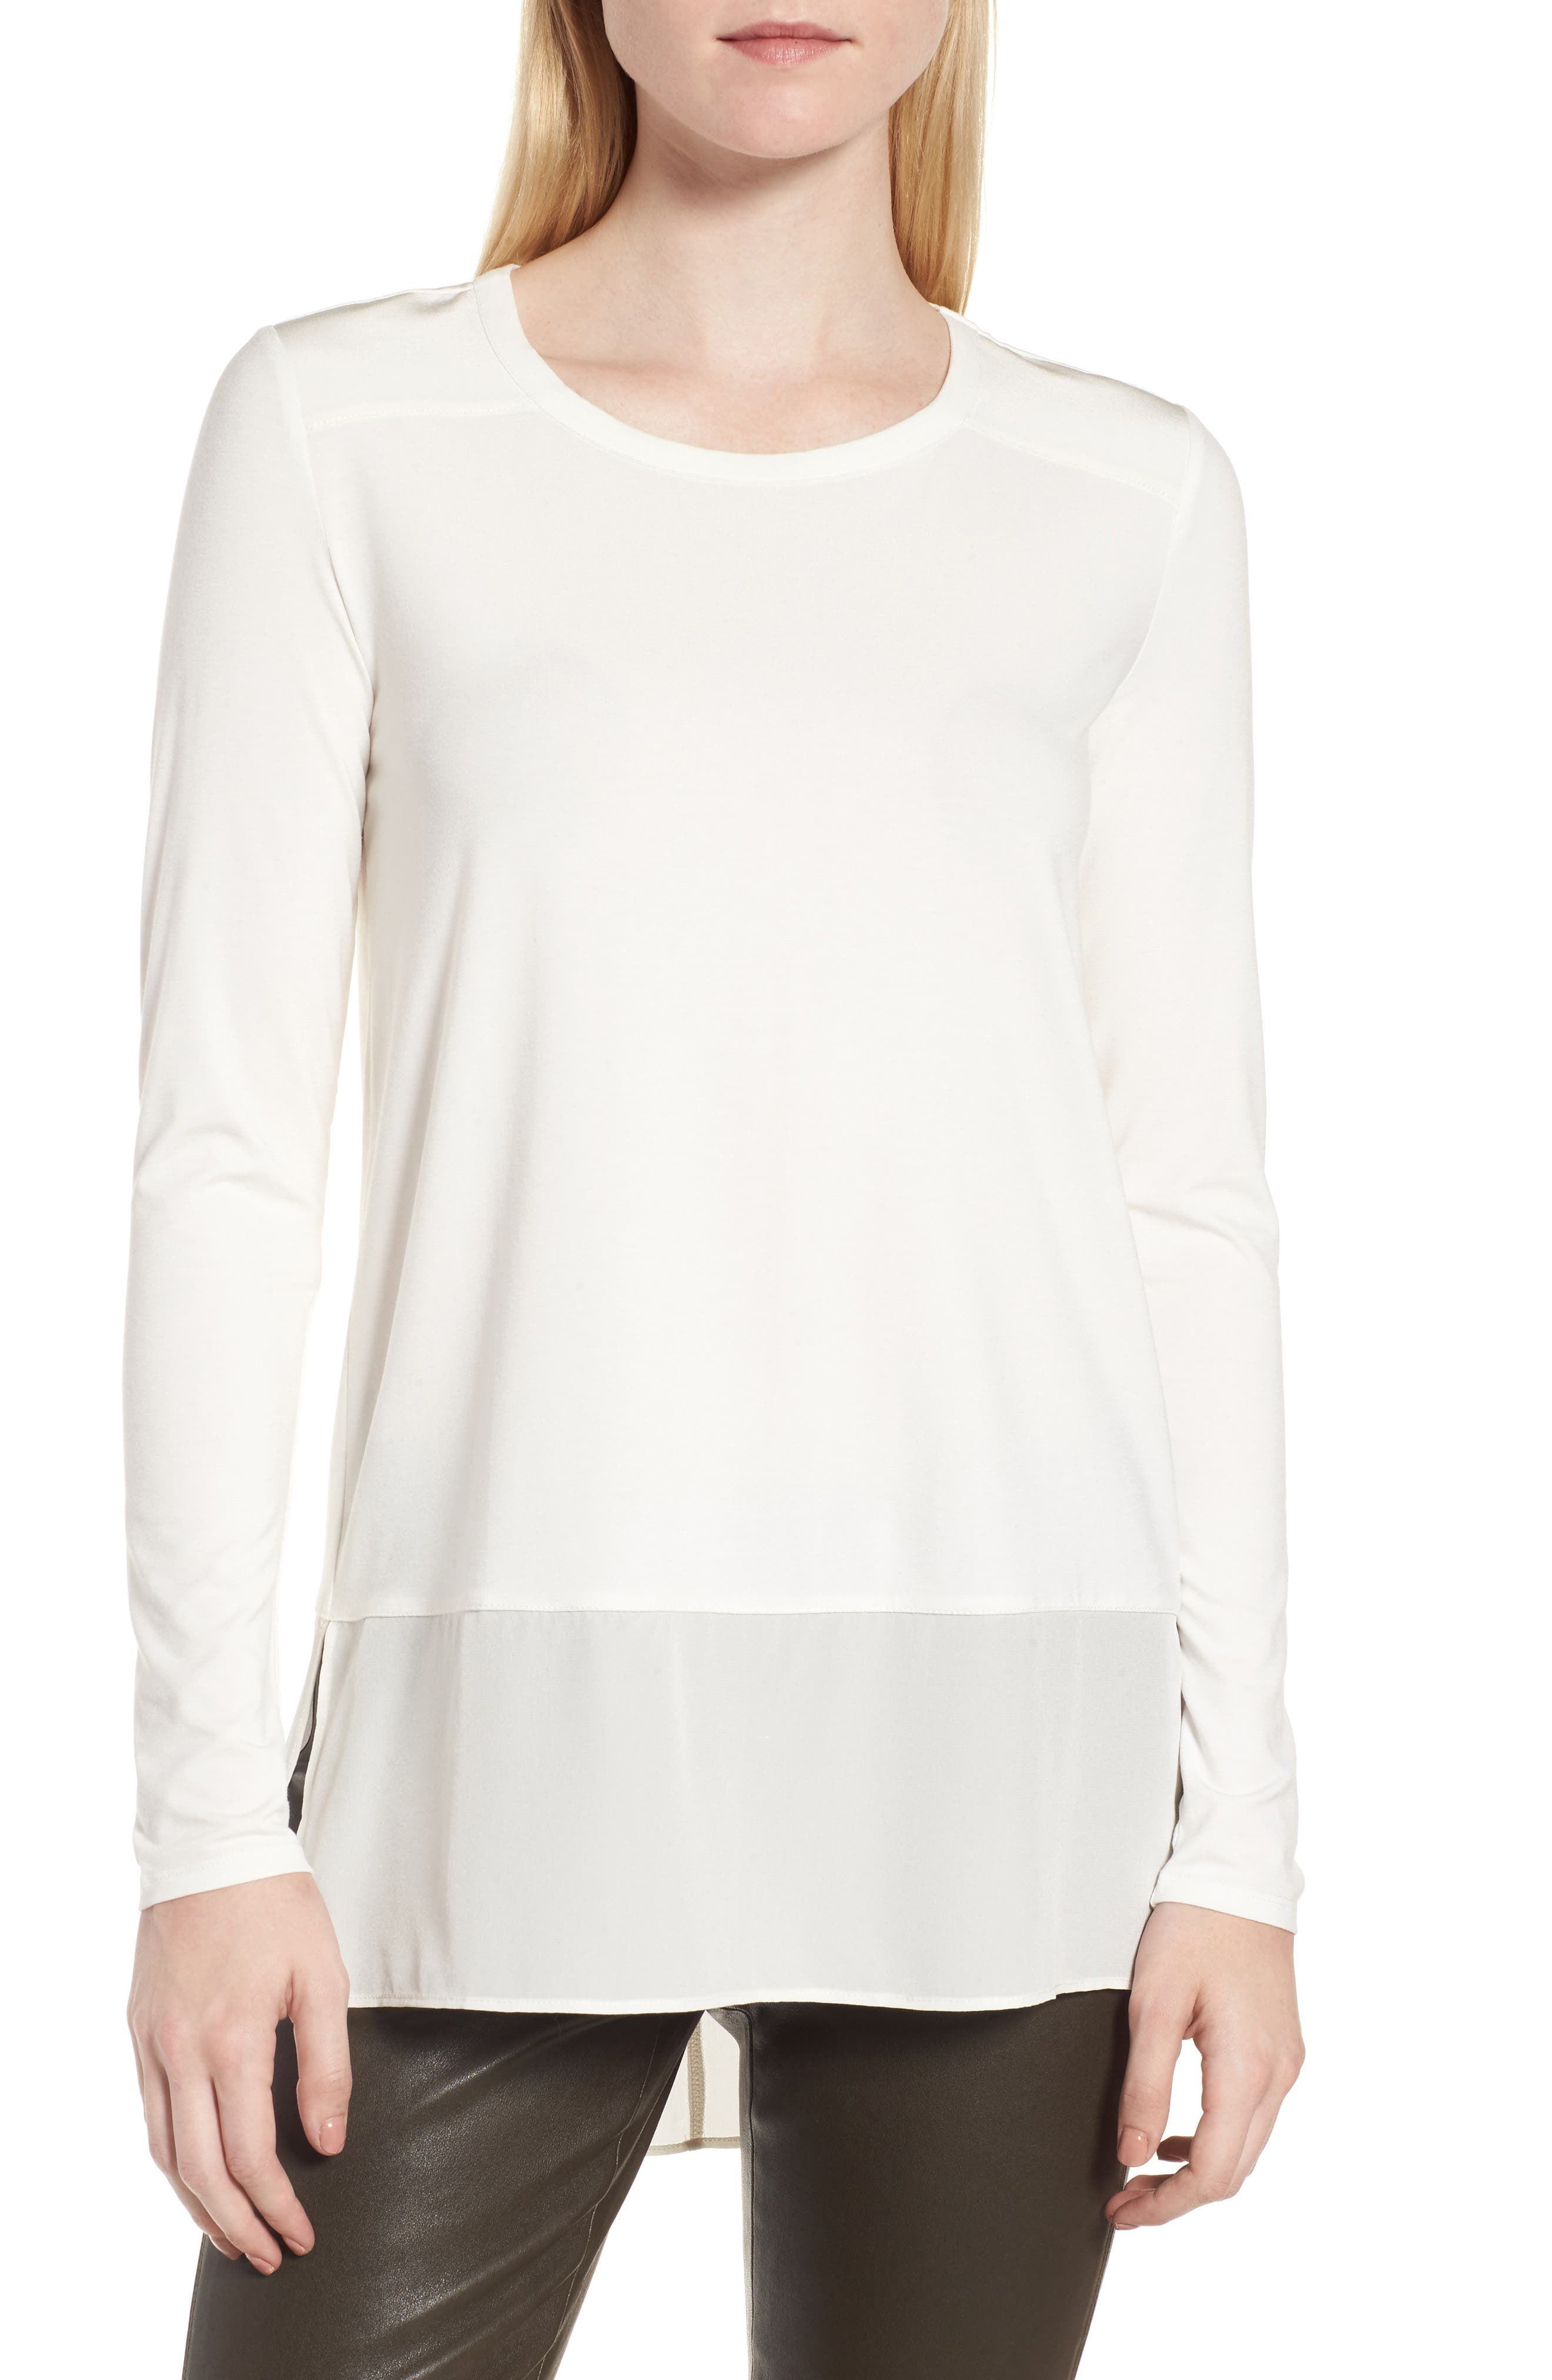 Alternate Image 1 Selected - Nordstrom Signature Mix Media High/Low Tee